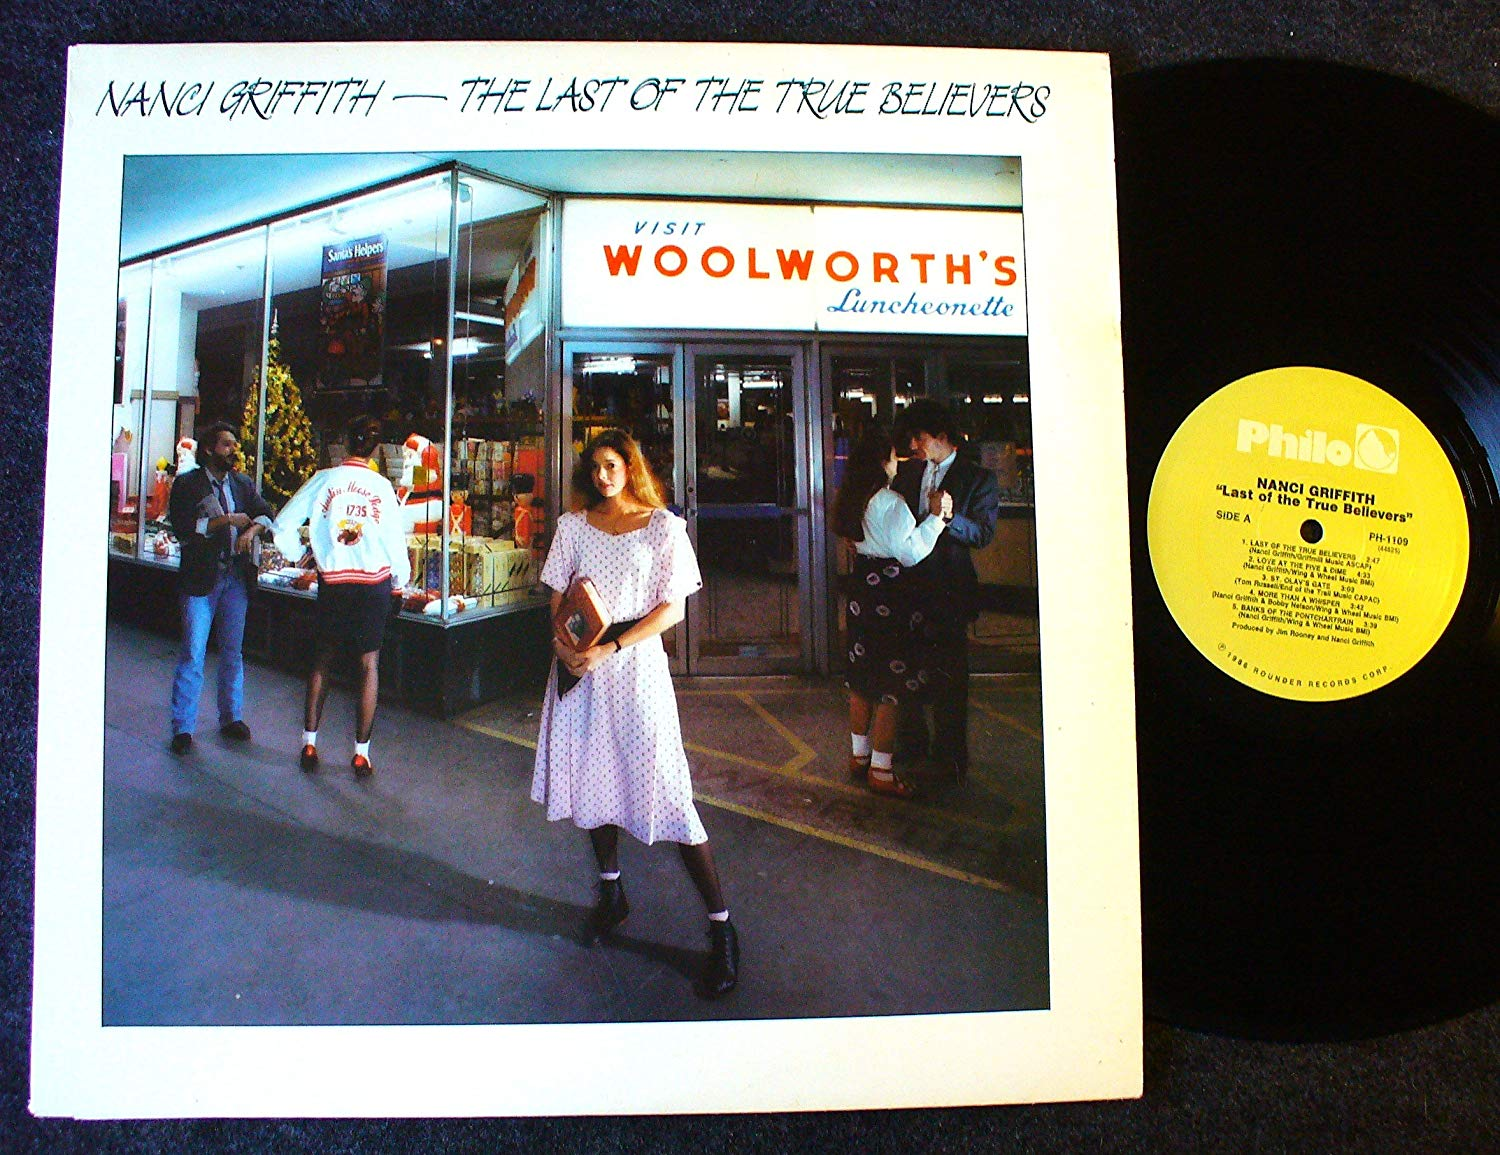 National Album Day: Last Of The True Believers by Nanci Griffith